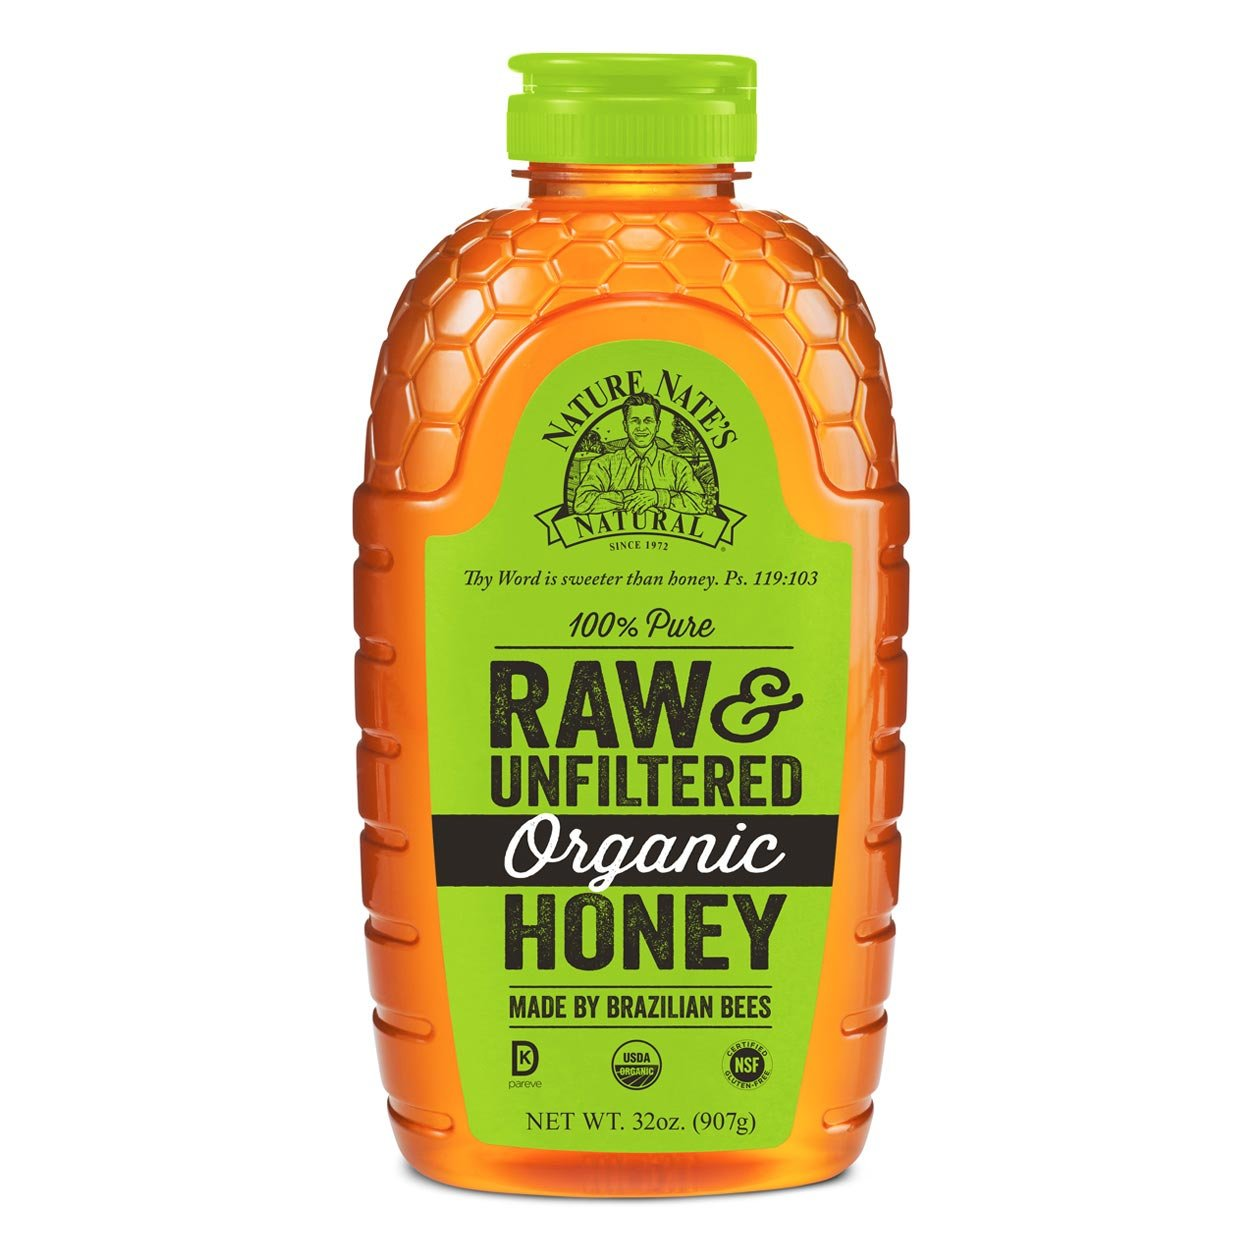 Nature Nate's, 32 Ounce, Organic, 100% Pure, Raw and Unfiltered Honey